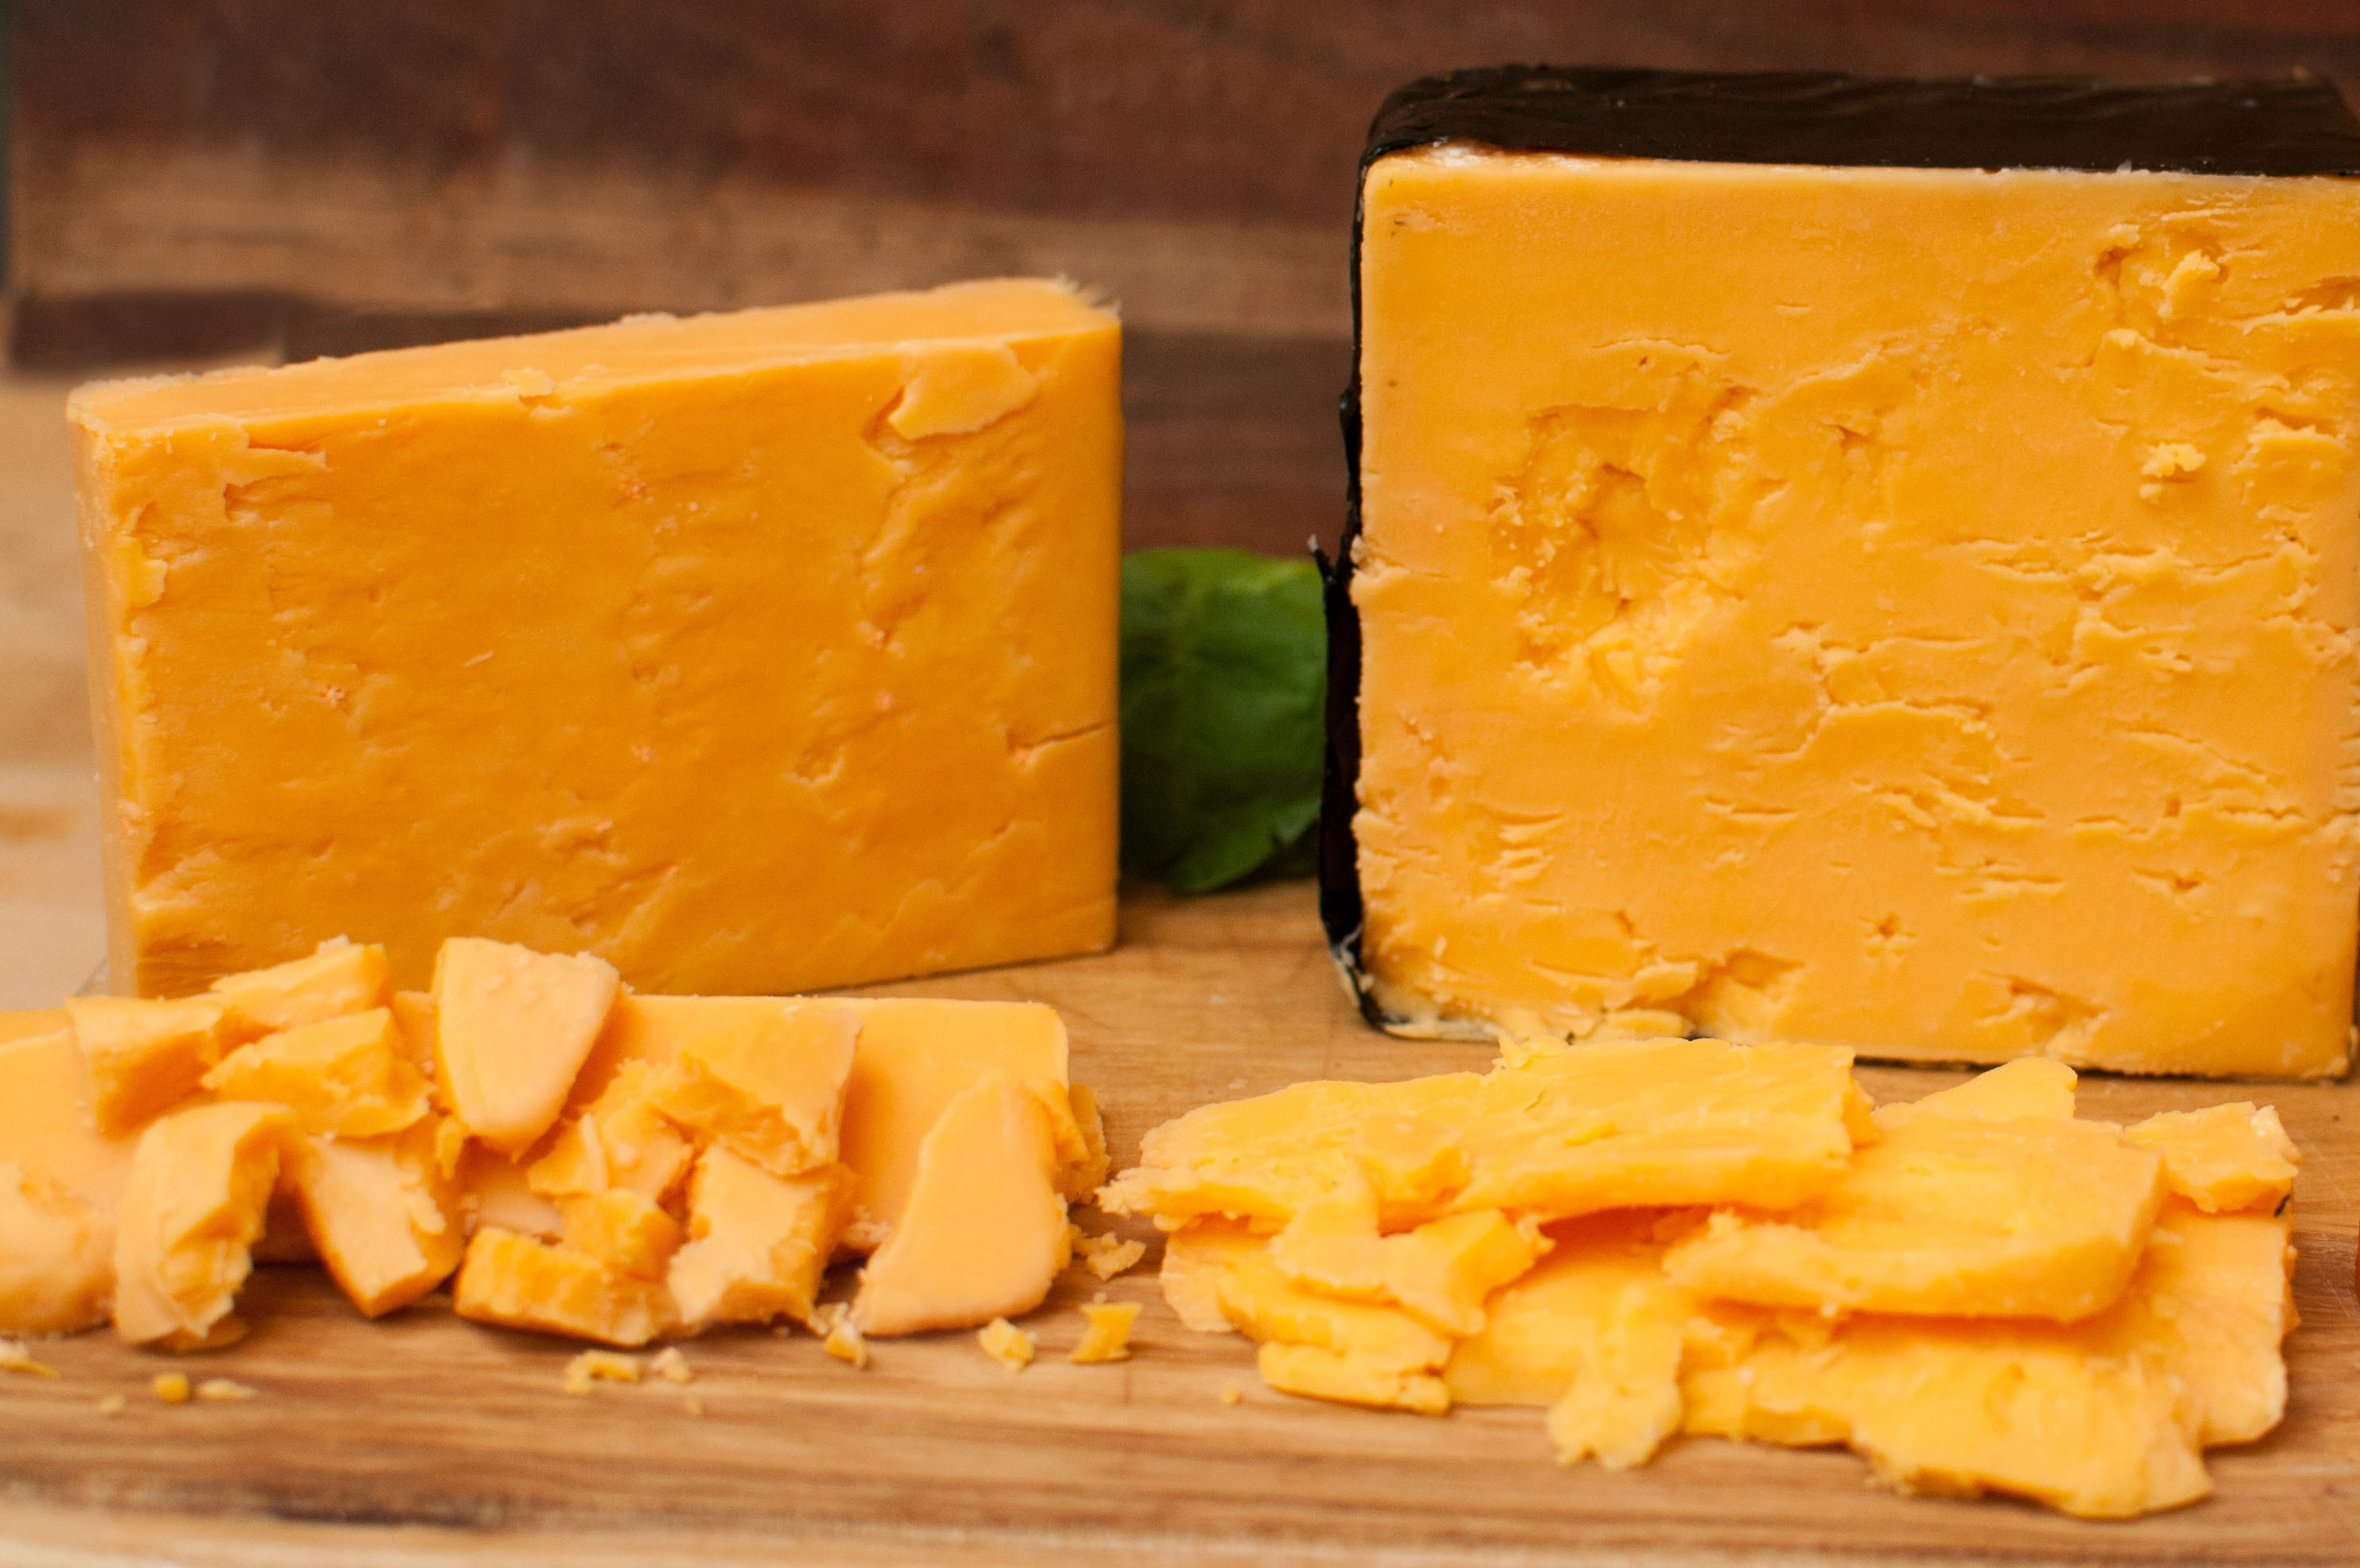 what makes cheese yellow